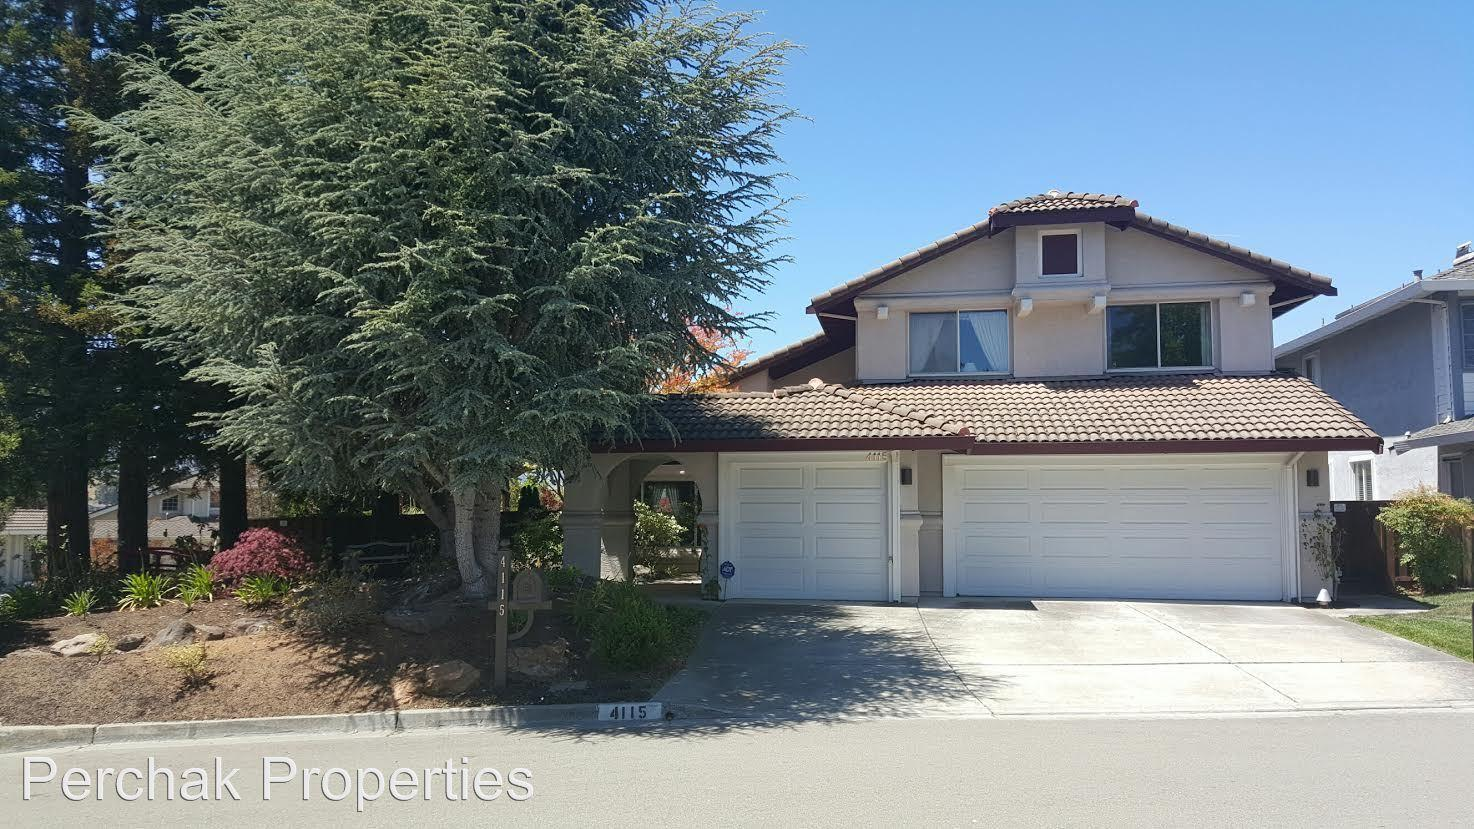 4115 Canyon Crest Road West photo #1